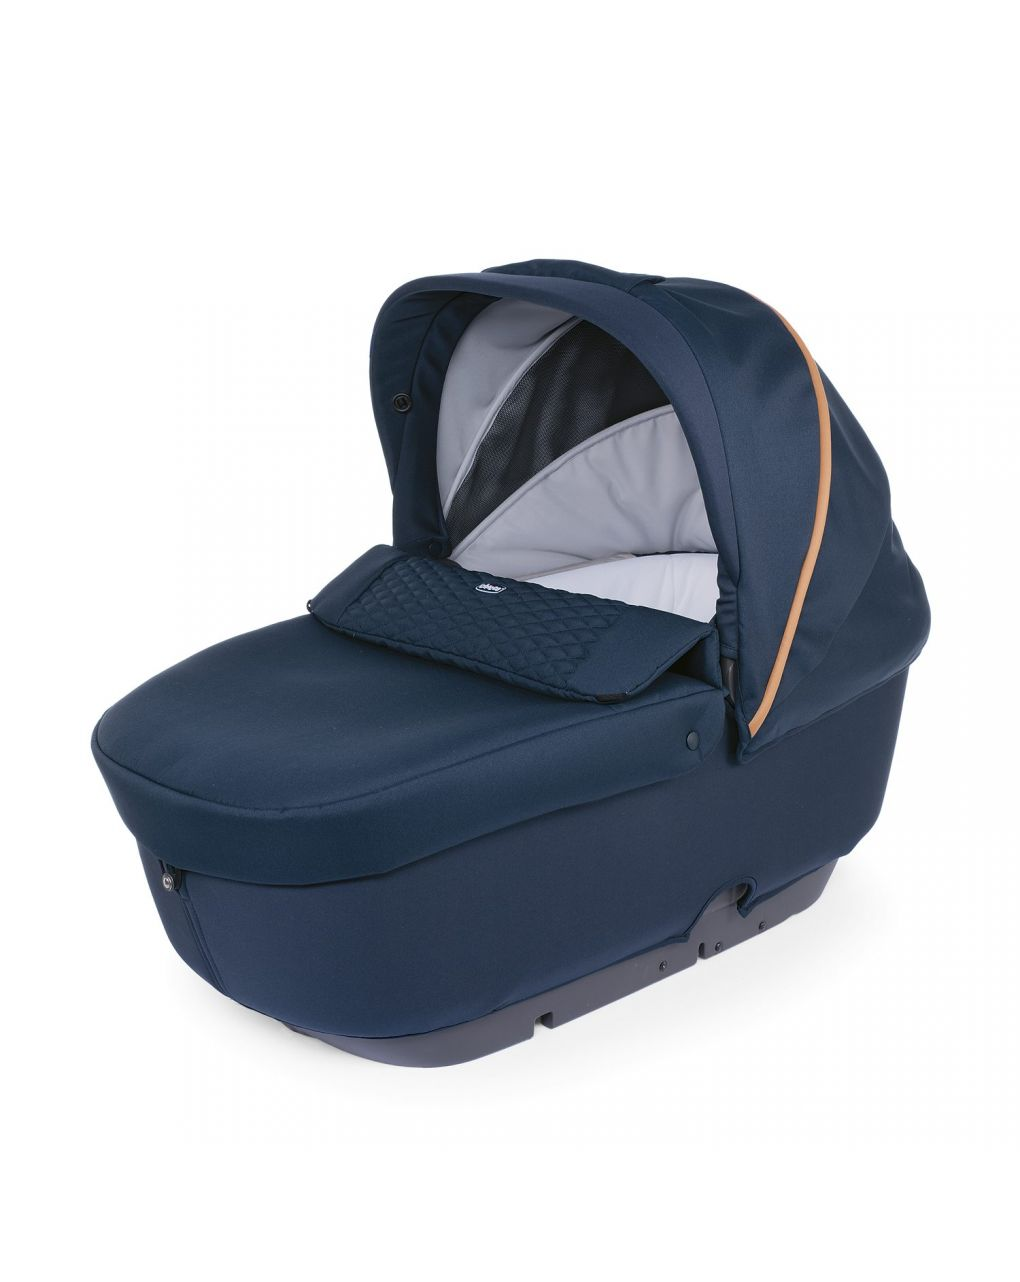 Trio stylego up crossover iconic blue con oasys up + bebècare - Chicco